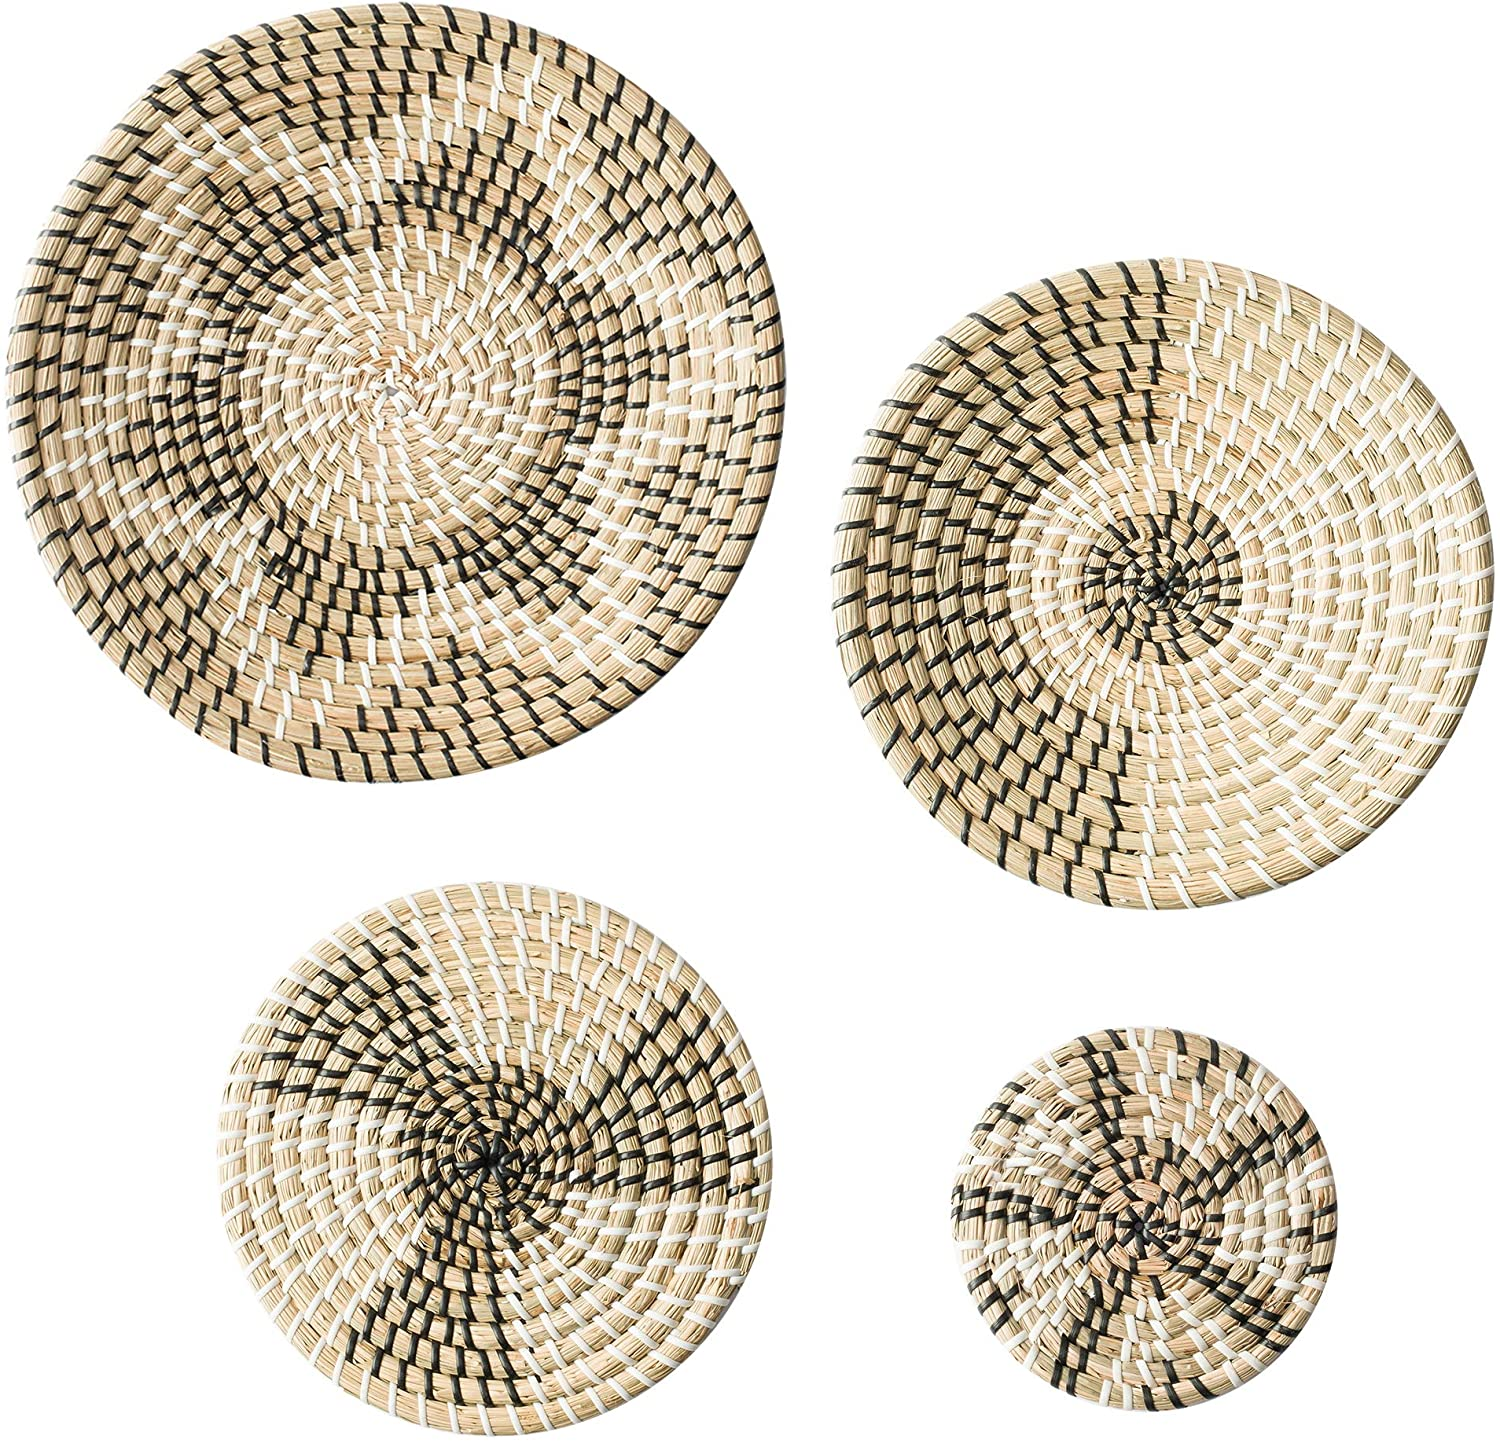 CUGUGRDS Natural Wicker Wall Basket Decor Set of 4- Handmade Seagrass Woven Wall Hanging Baskets, Flat Round Boho Wall baskets for Home Bedroom, Kitchen, Living Room, Unique Wall Art